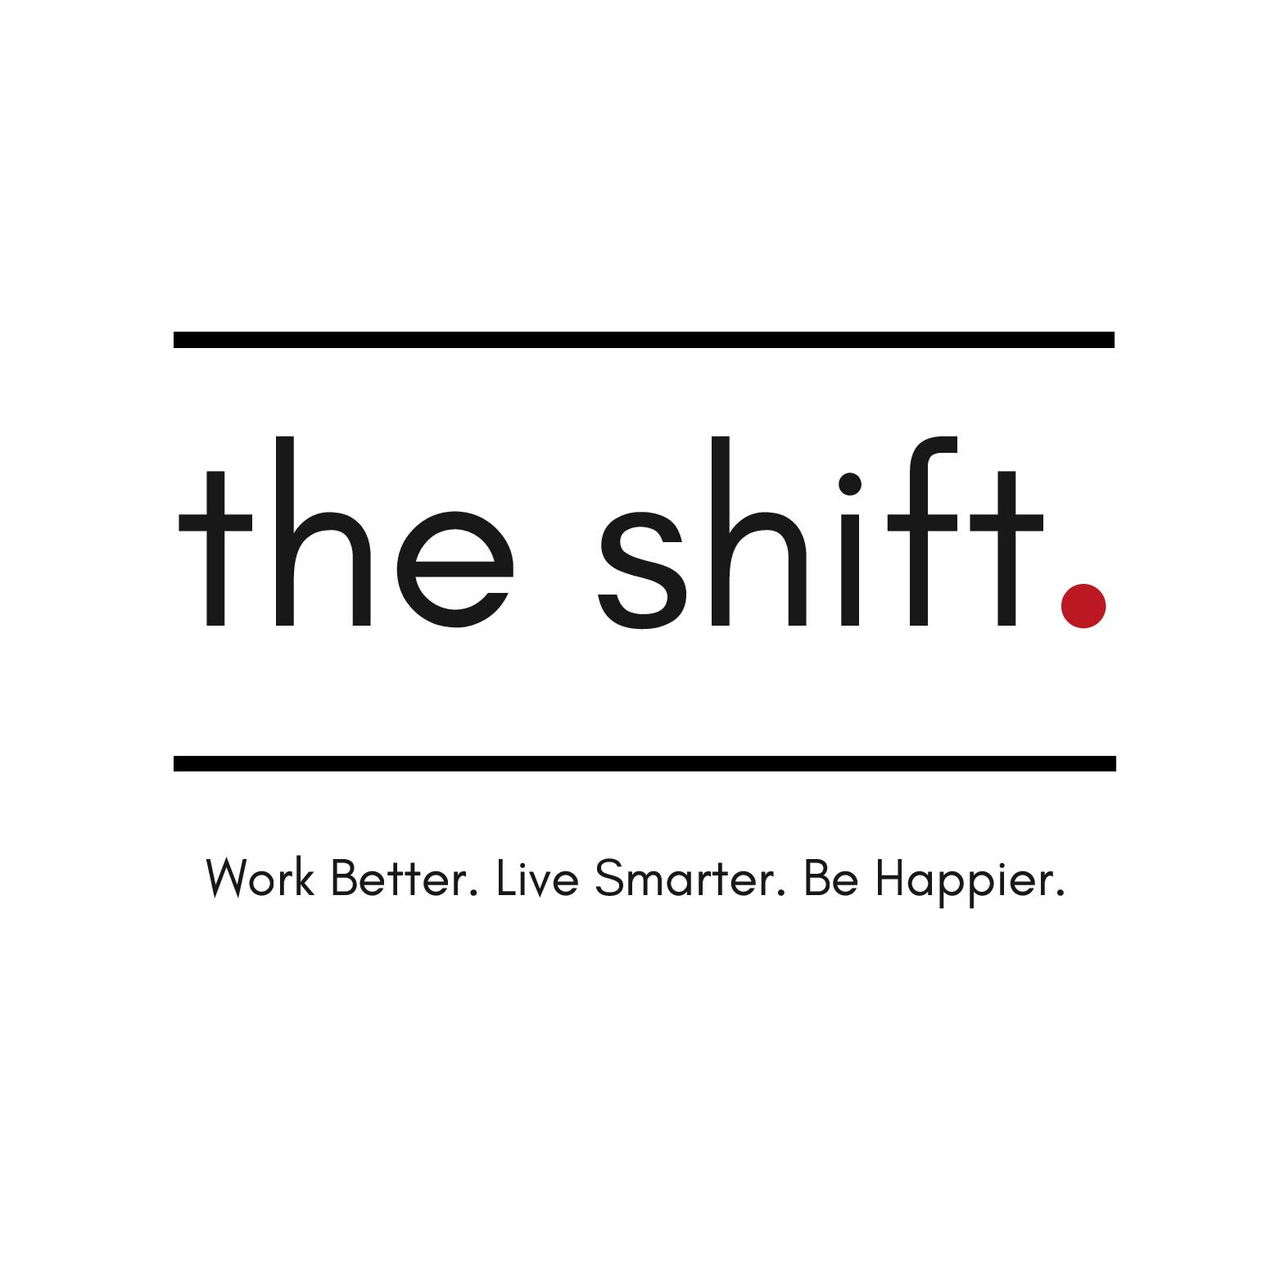 the shift.